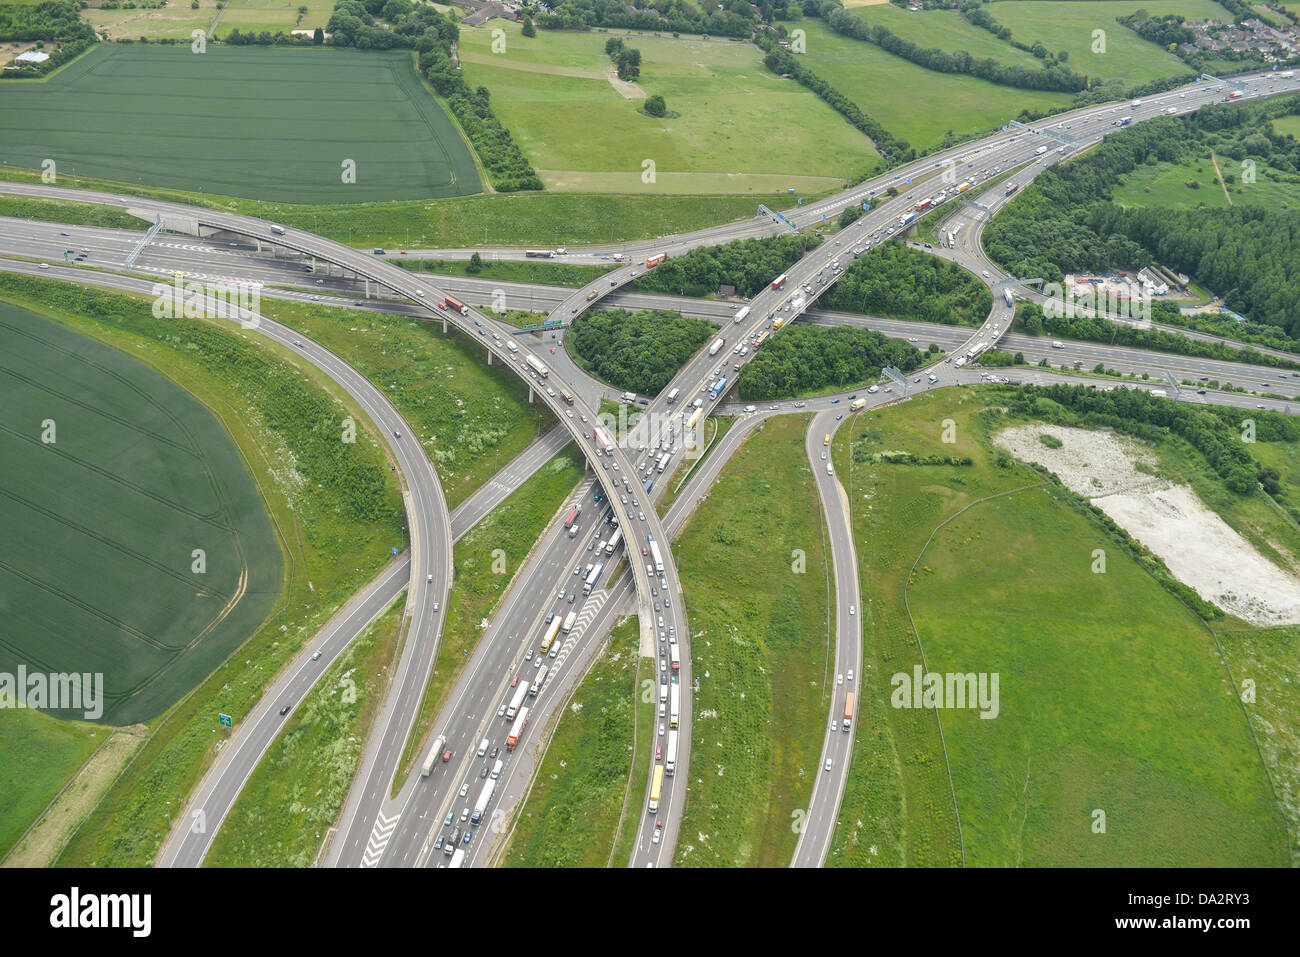 Aerial photograph of the M25 A2 junction with the A282 - Stock Image